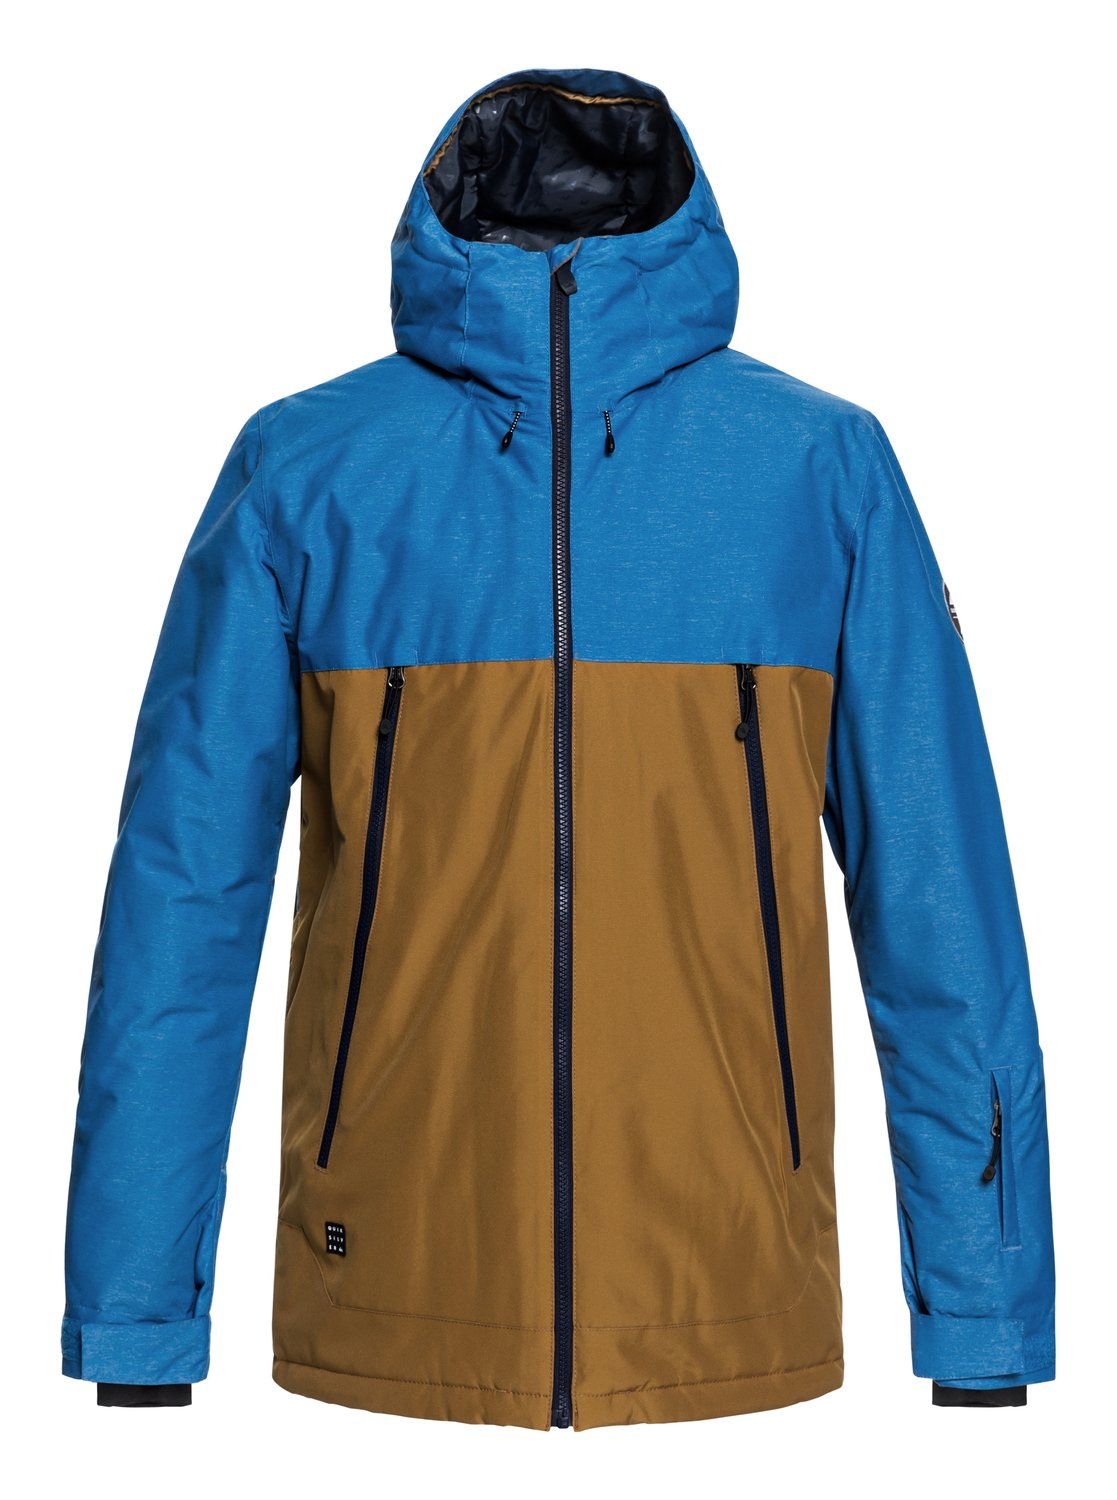 Sierra Snow Jacket for Men